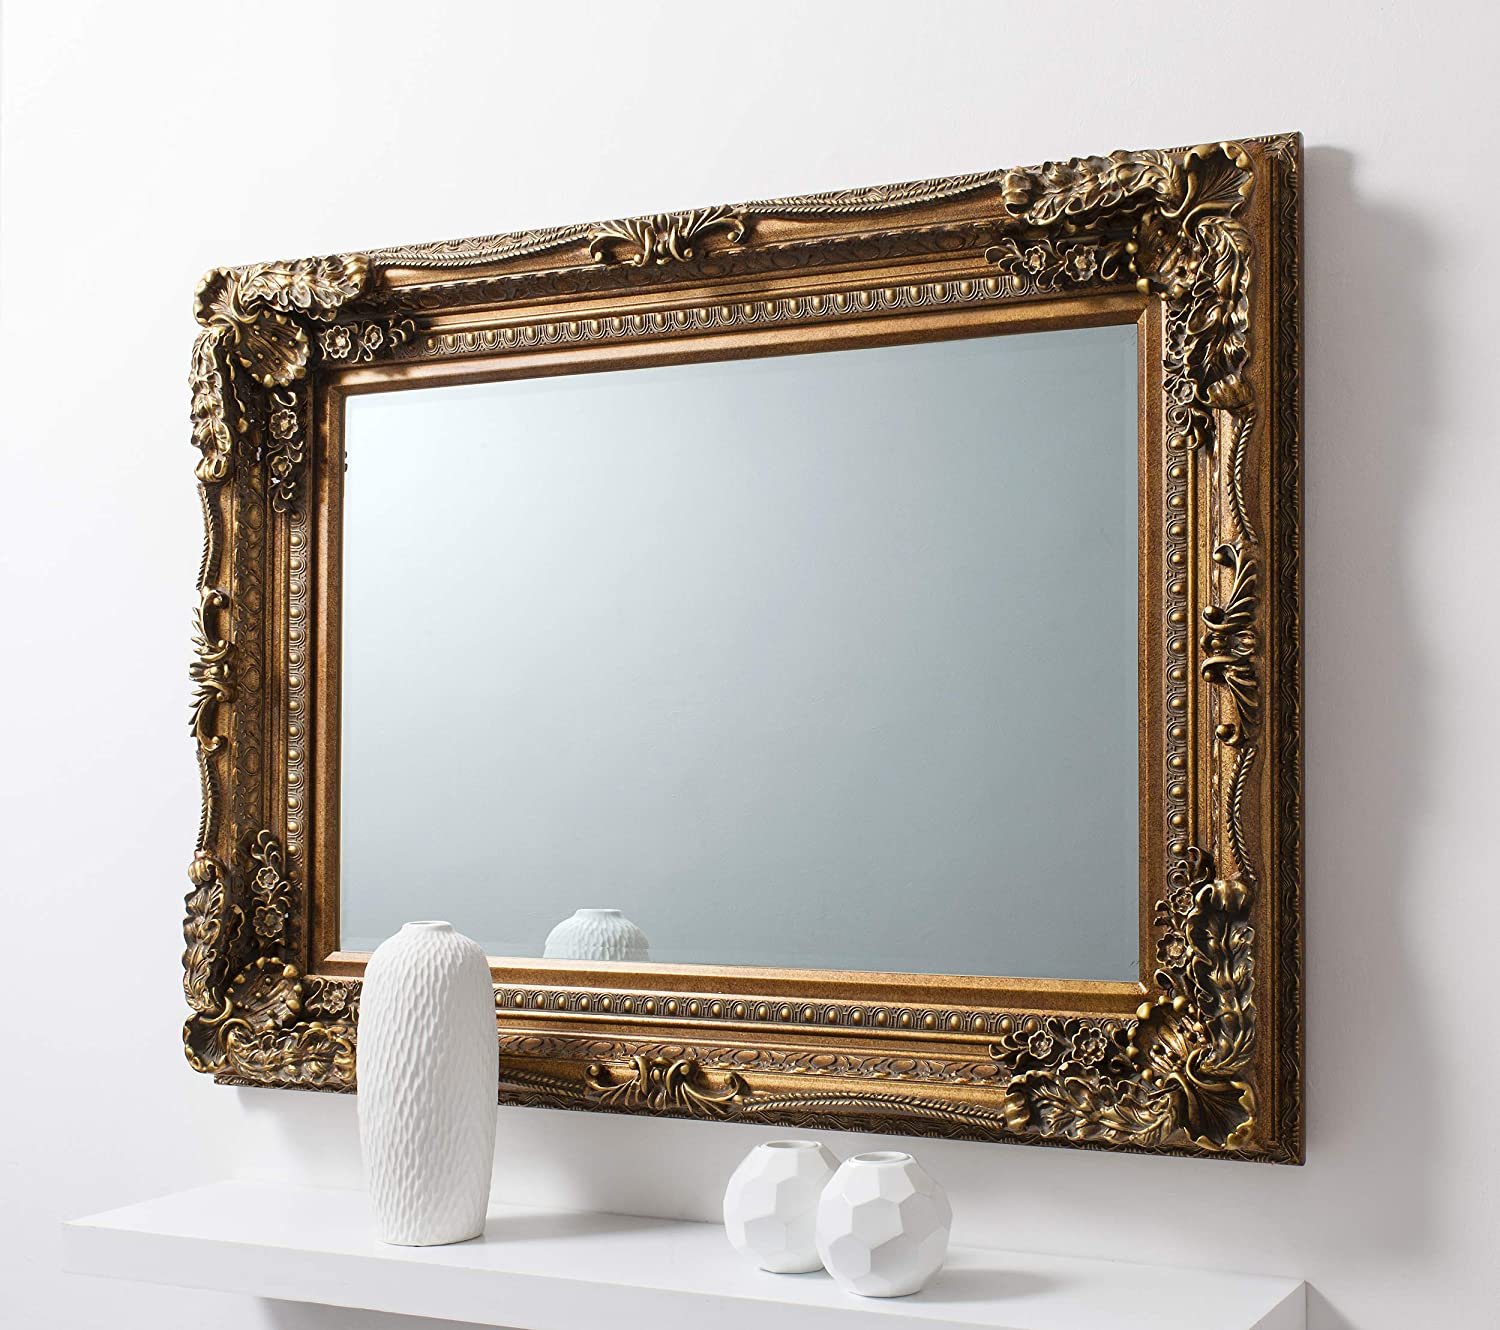 Barcelona Trading Carved Louis Gold Ornate French Frame Wall/Over Mantle Mirror - 35in x 47in Mirroroutlet